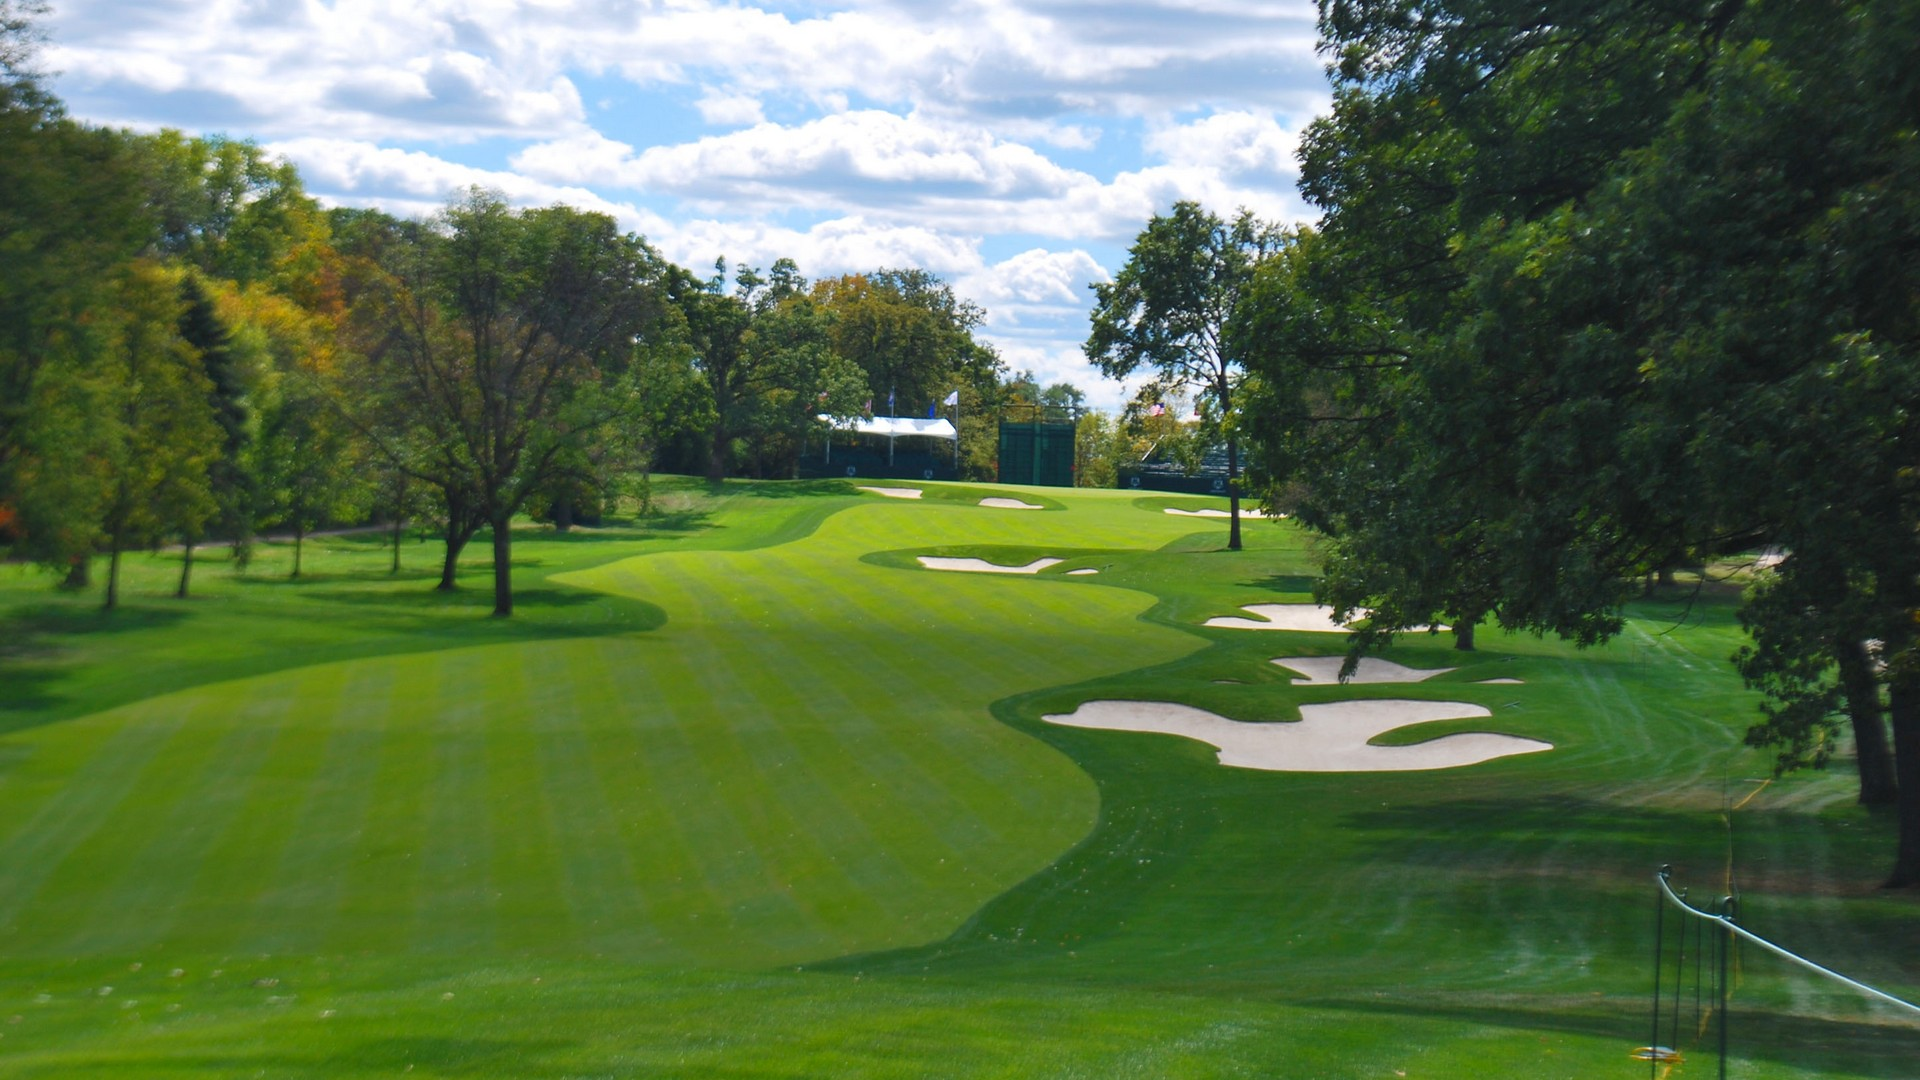 Ryder Cup 2012 Medinah Country Club Golf Course 1920x1080 HD Golf 1920x1080